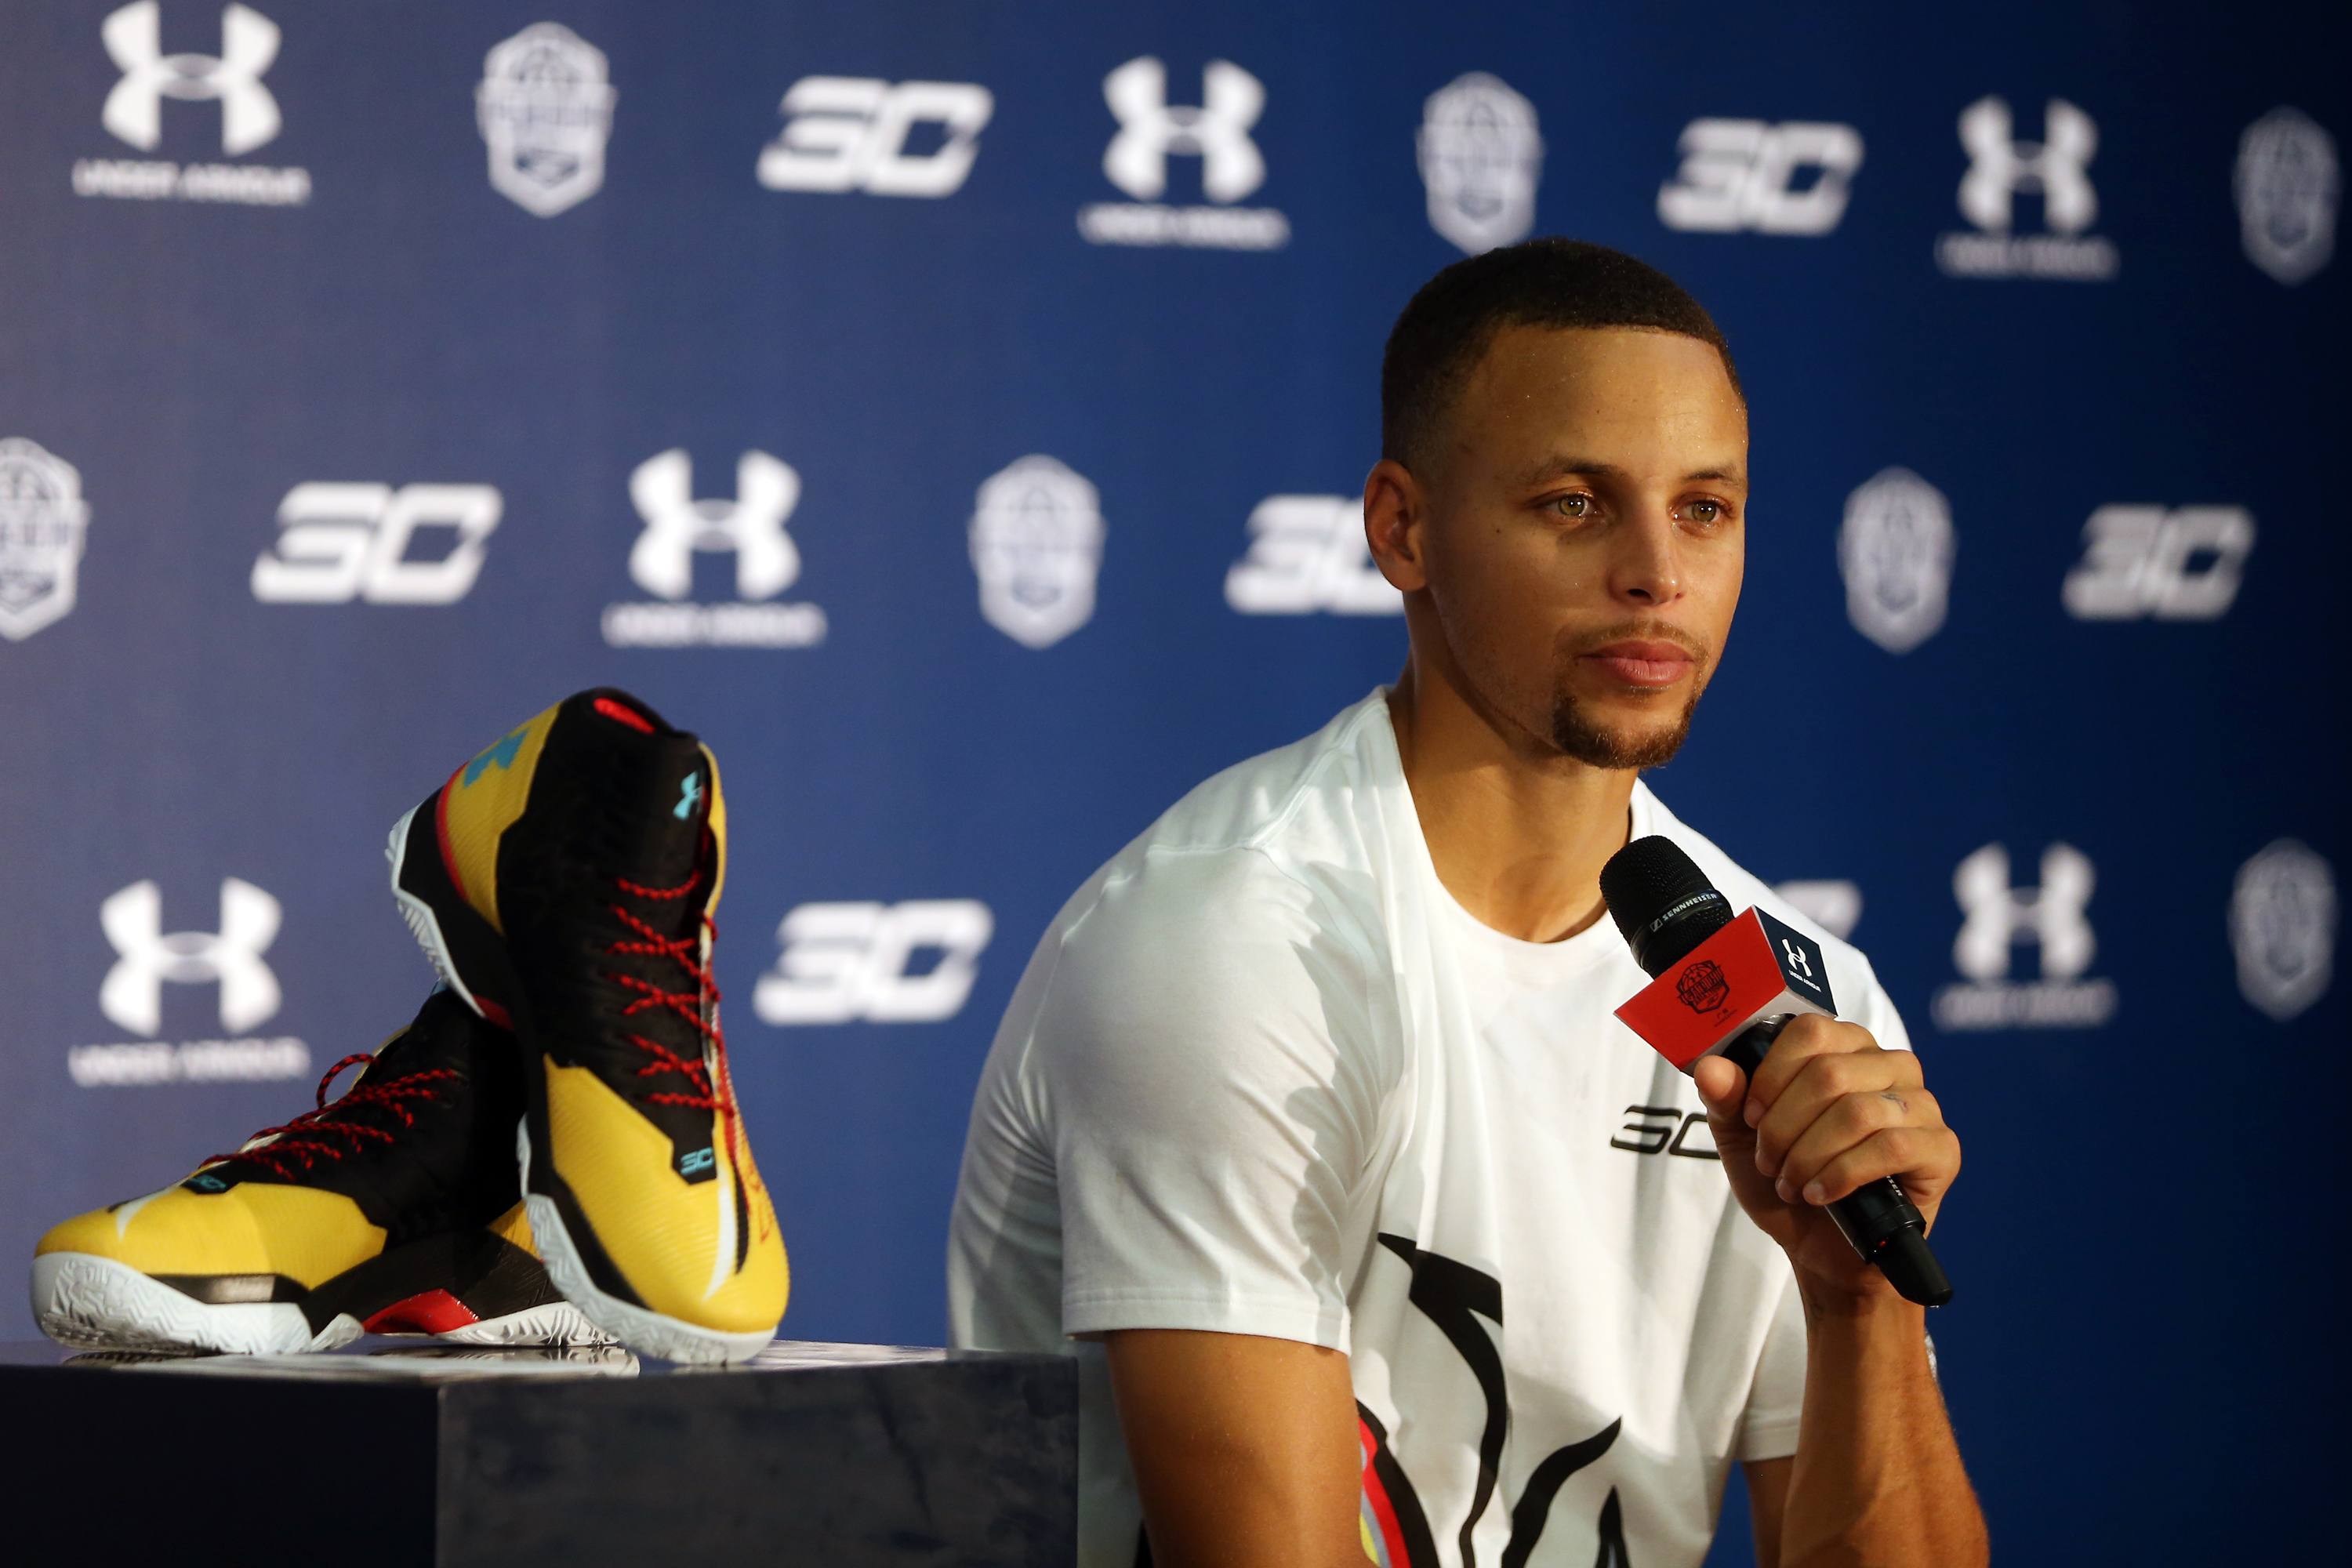 NBA Player Stephen Curry Visits Guangzhou